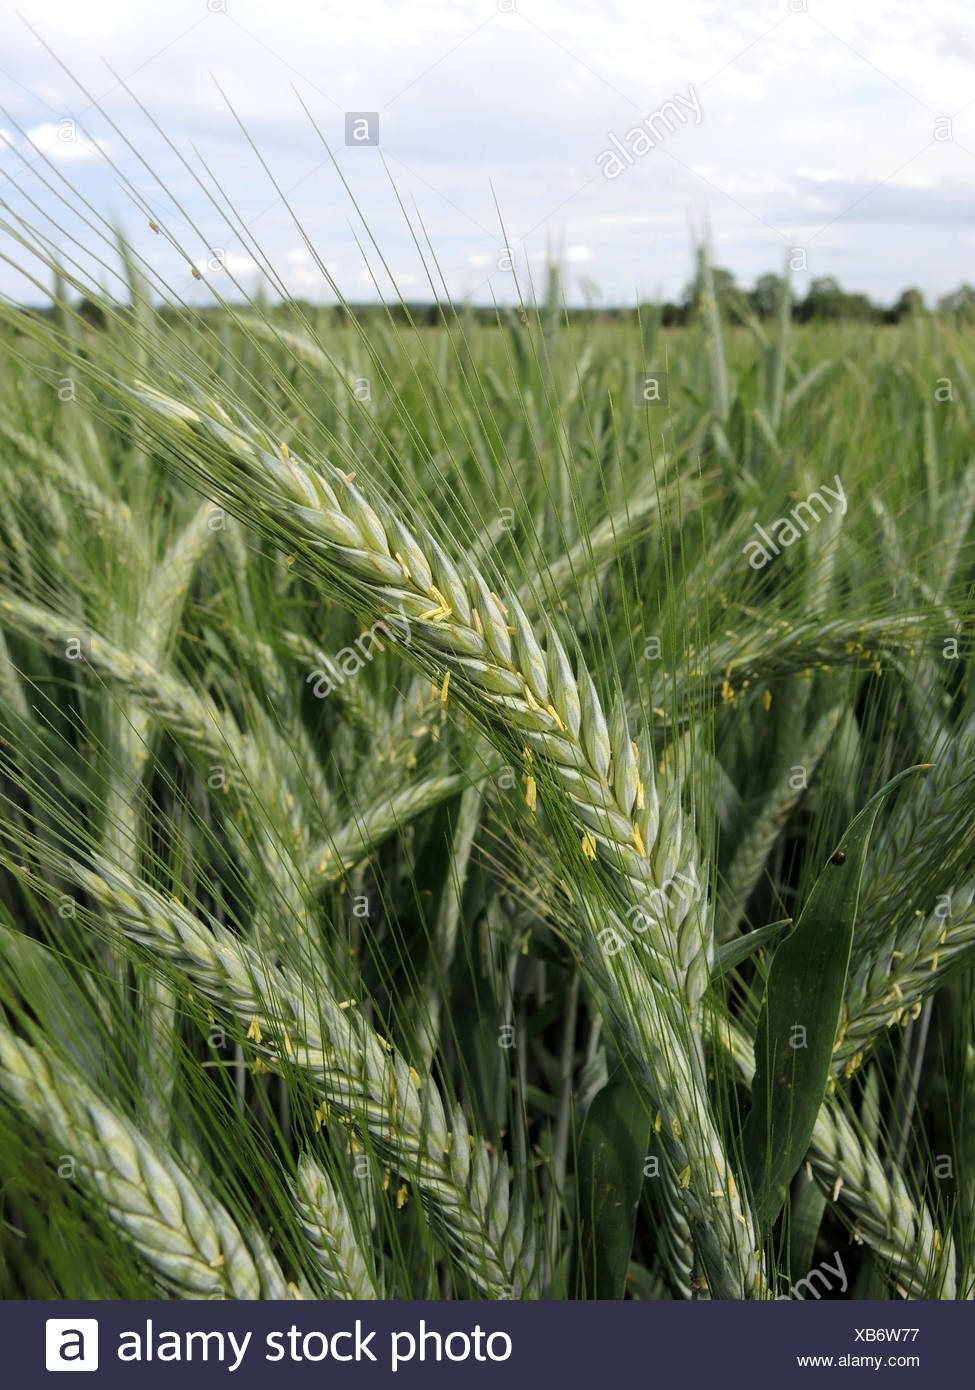 of triticale stock photos of triticale stock images alamy